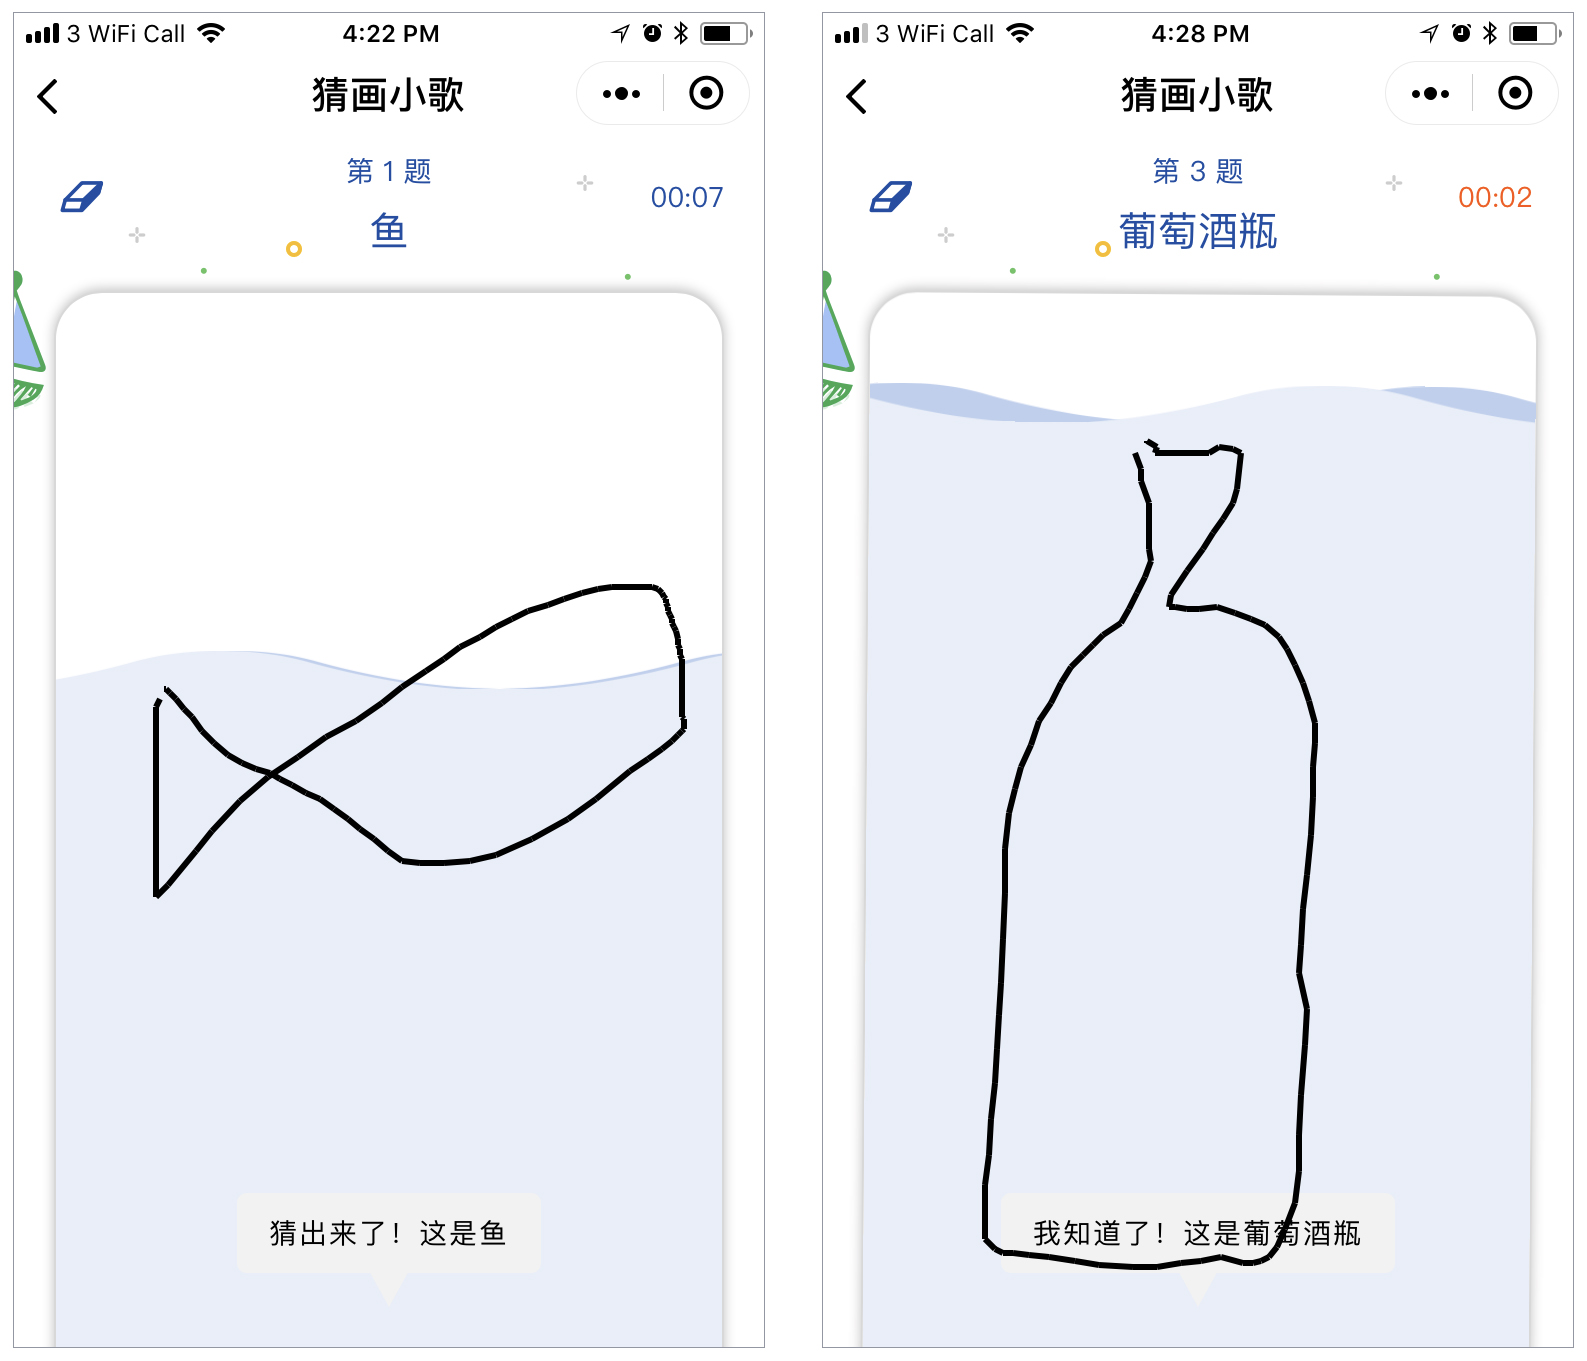 Google tests the waters in China with a drawing game - Inkstone